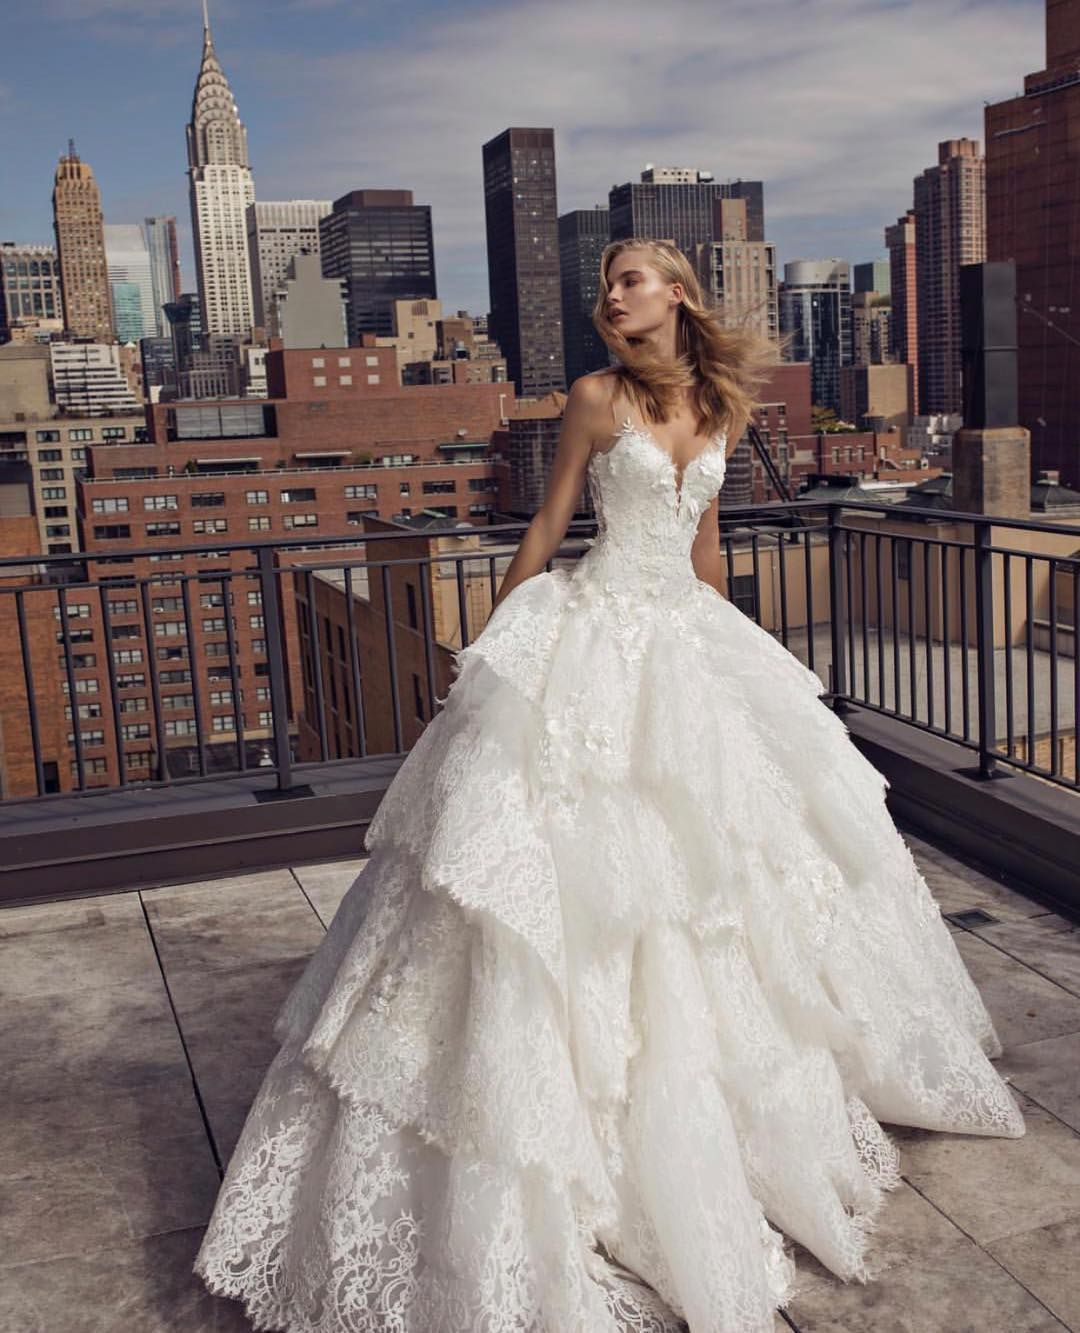 Lace ball gown tiered lace skirt wedding dress by Pnina